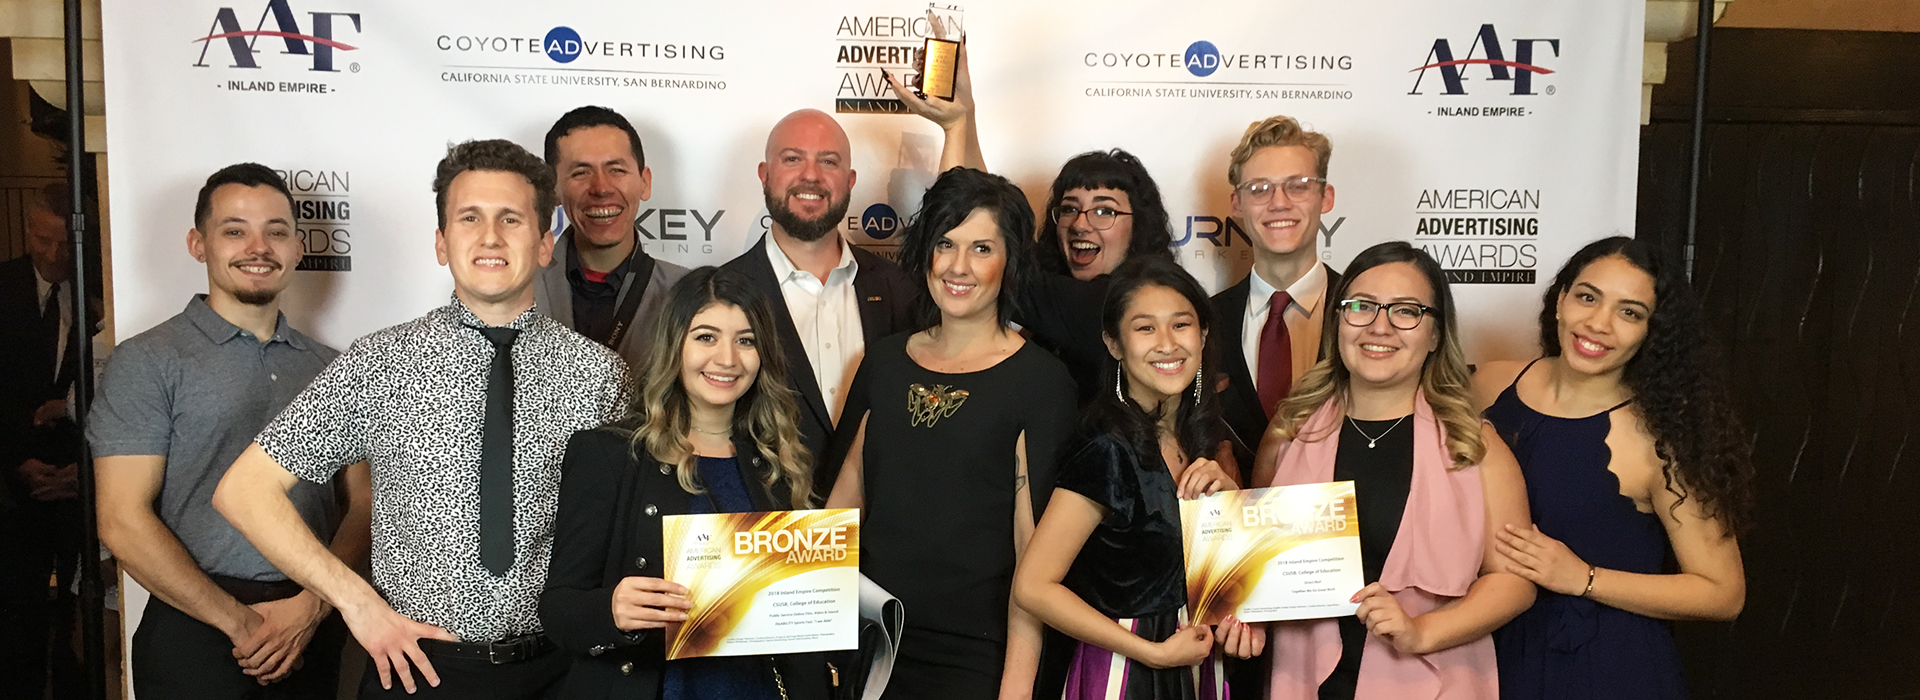 Coyote Advertising wins major awards from American Advertising Federation Inland Empire Chapter